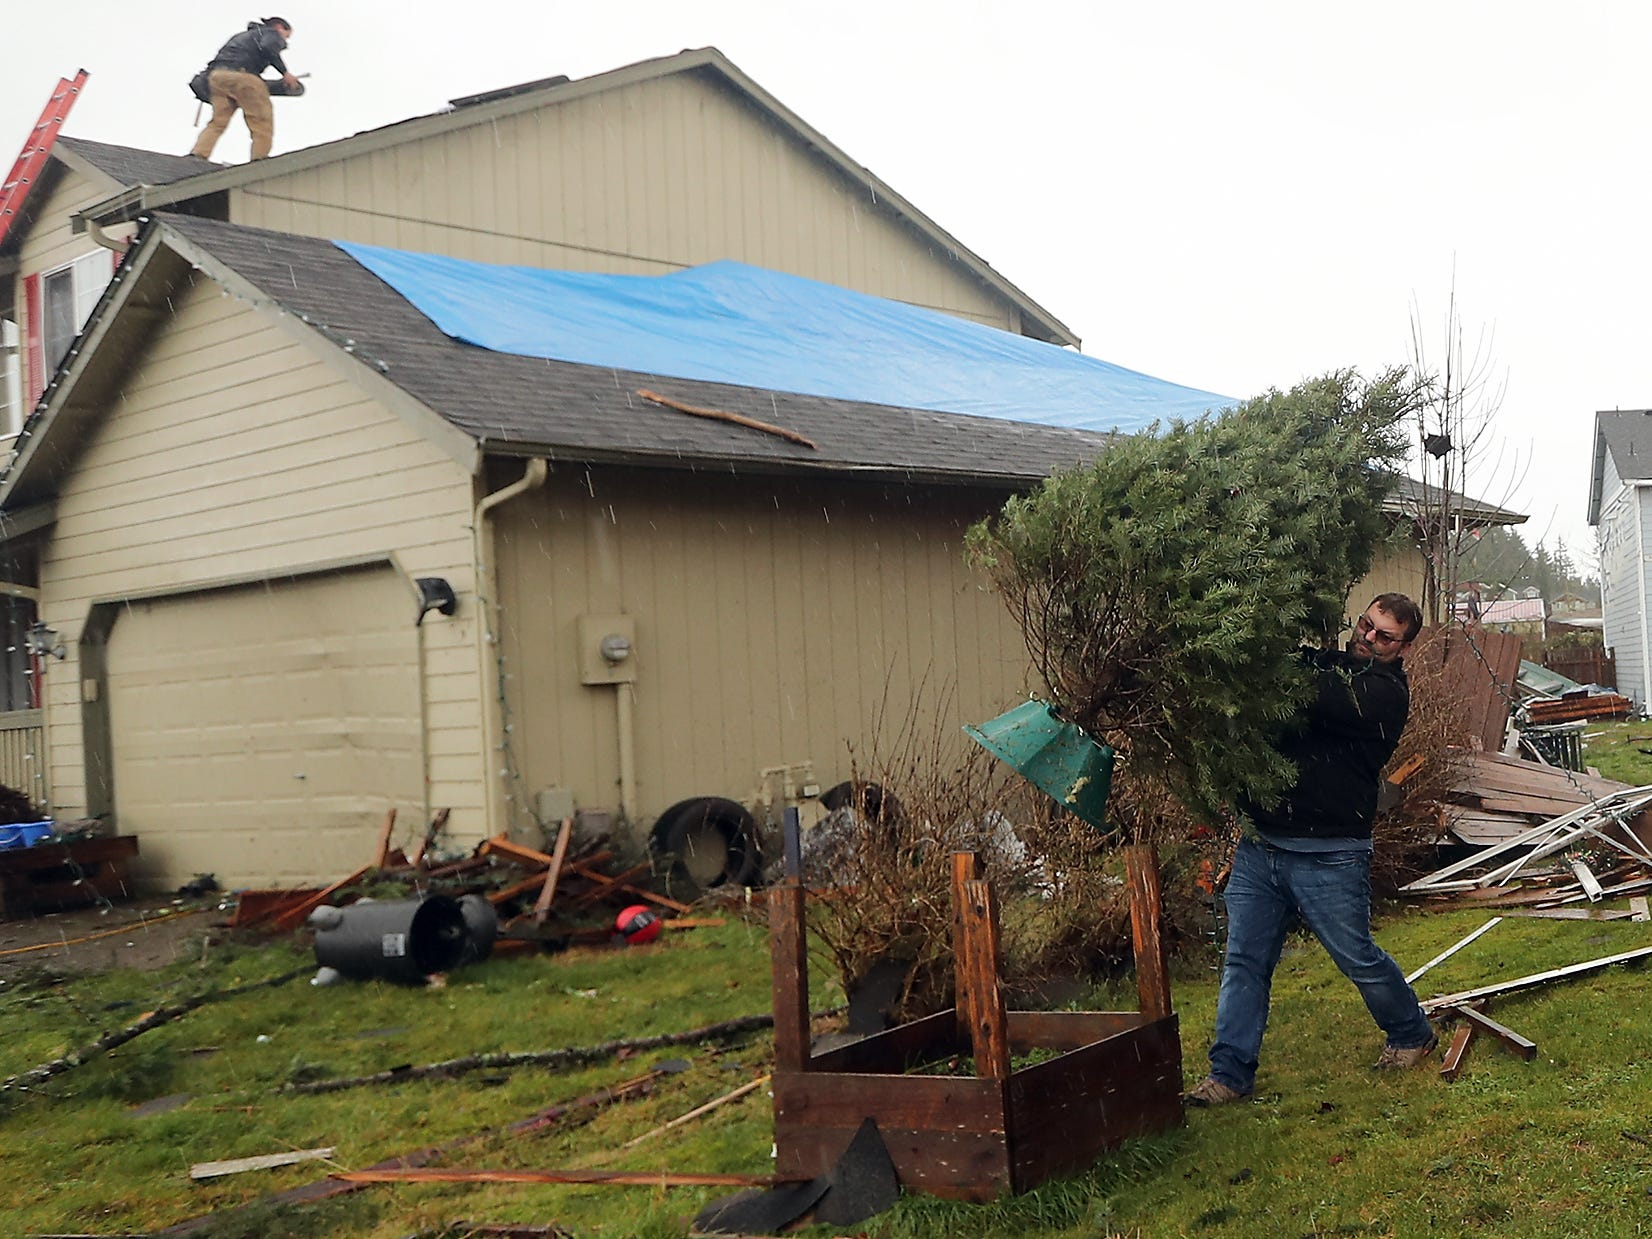 John Mueller places his family's Christmas tree in the fron yard as they salvage what they can from their heavily damaged home in Port Orchard on Wednesday, December 19, 2018.